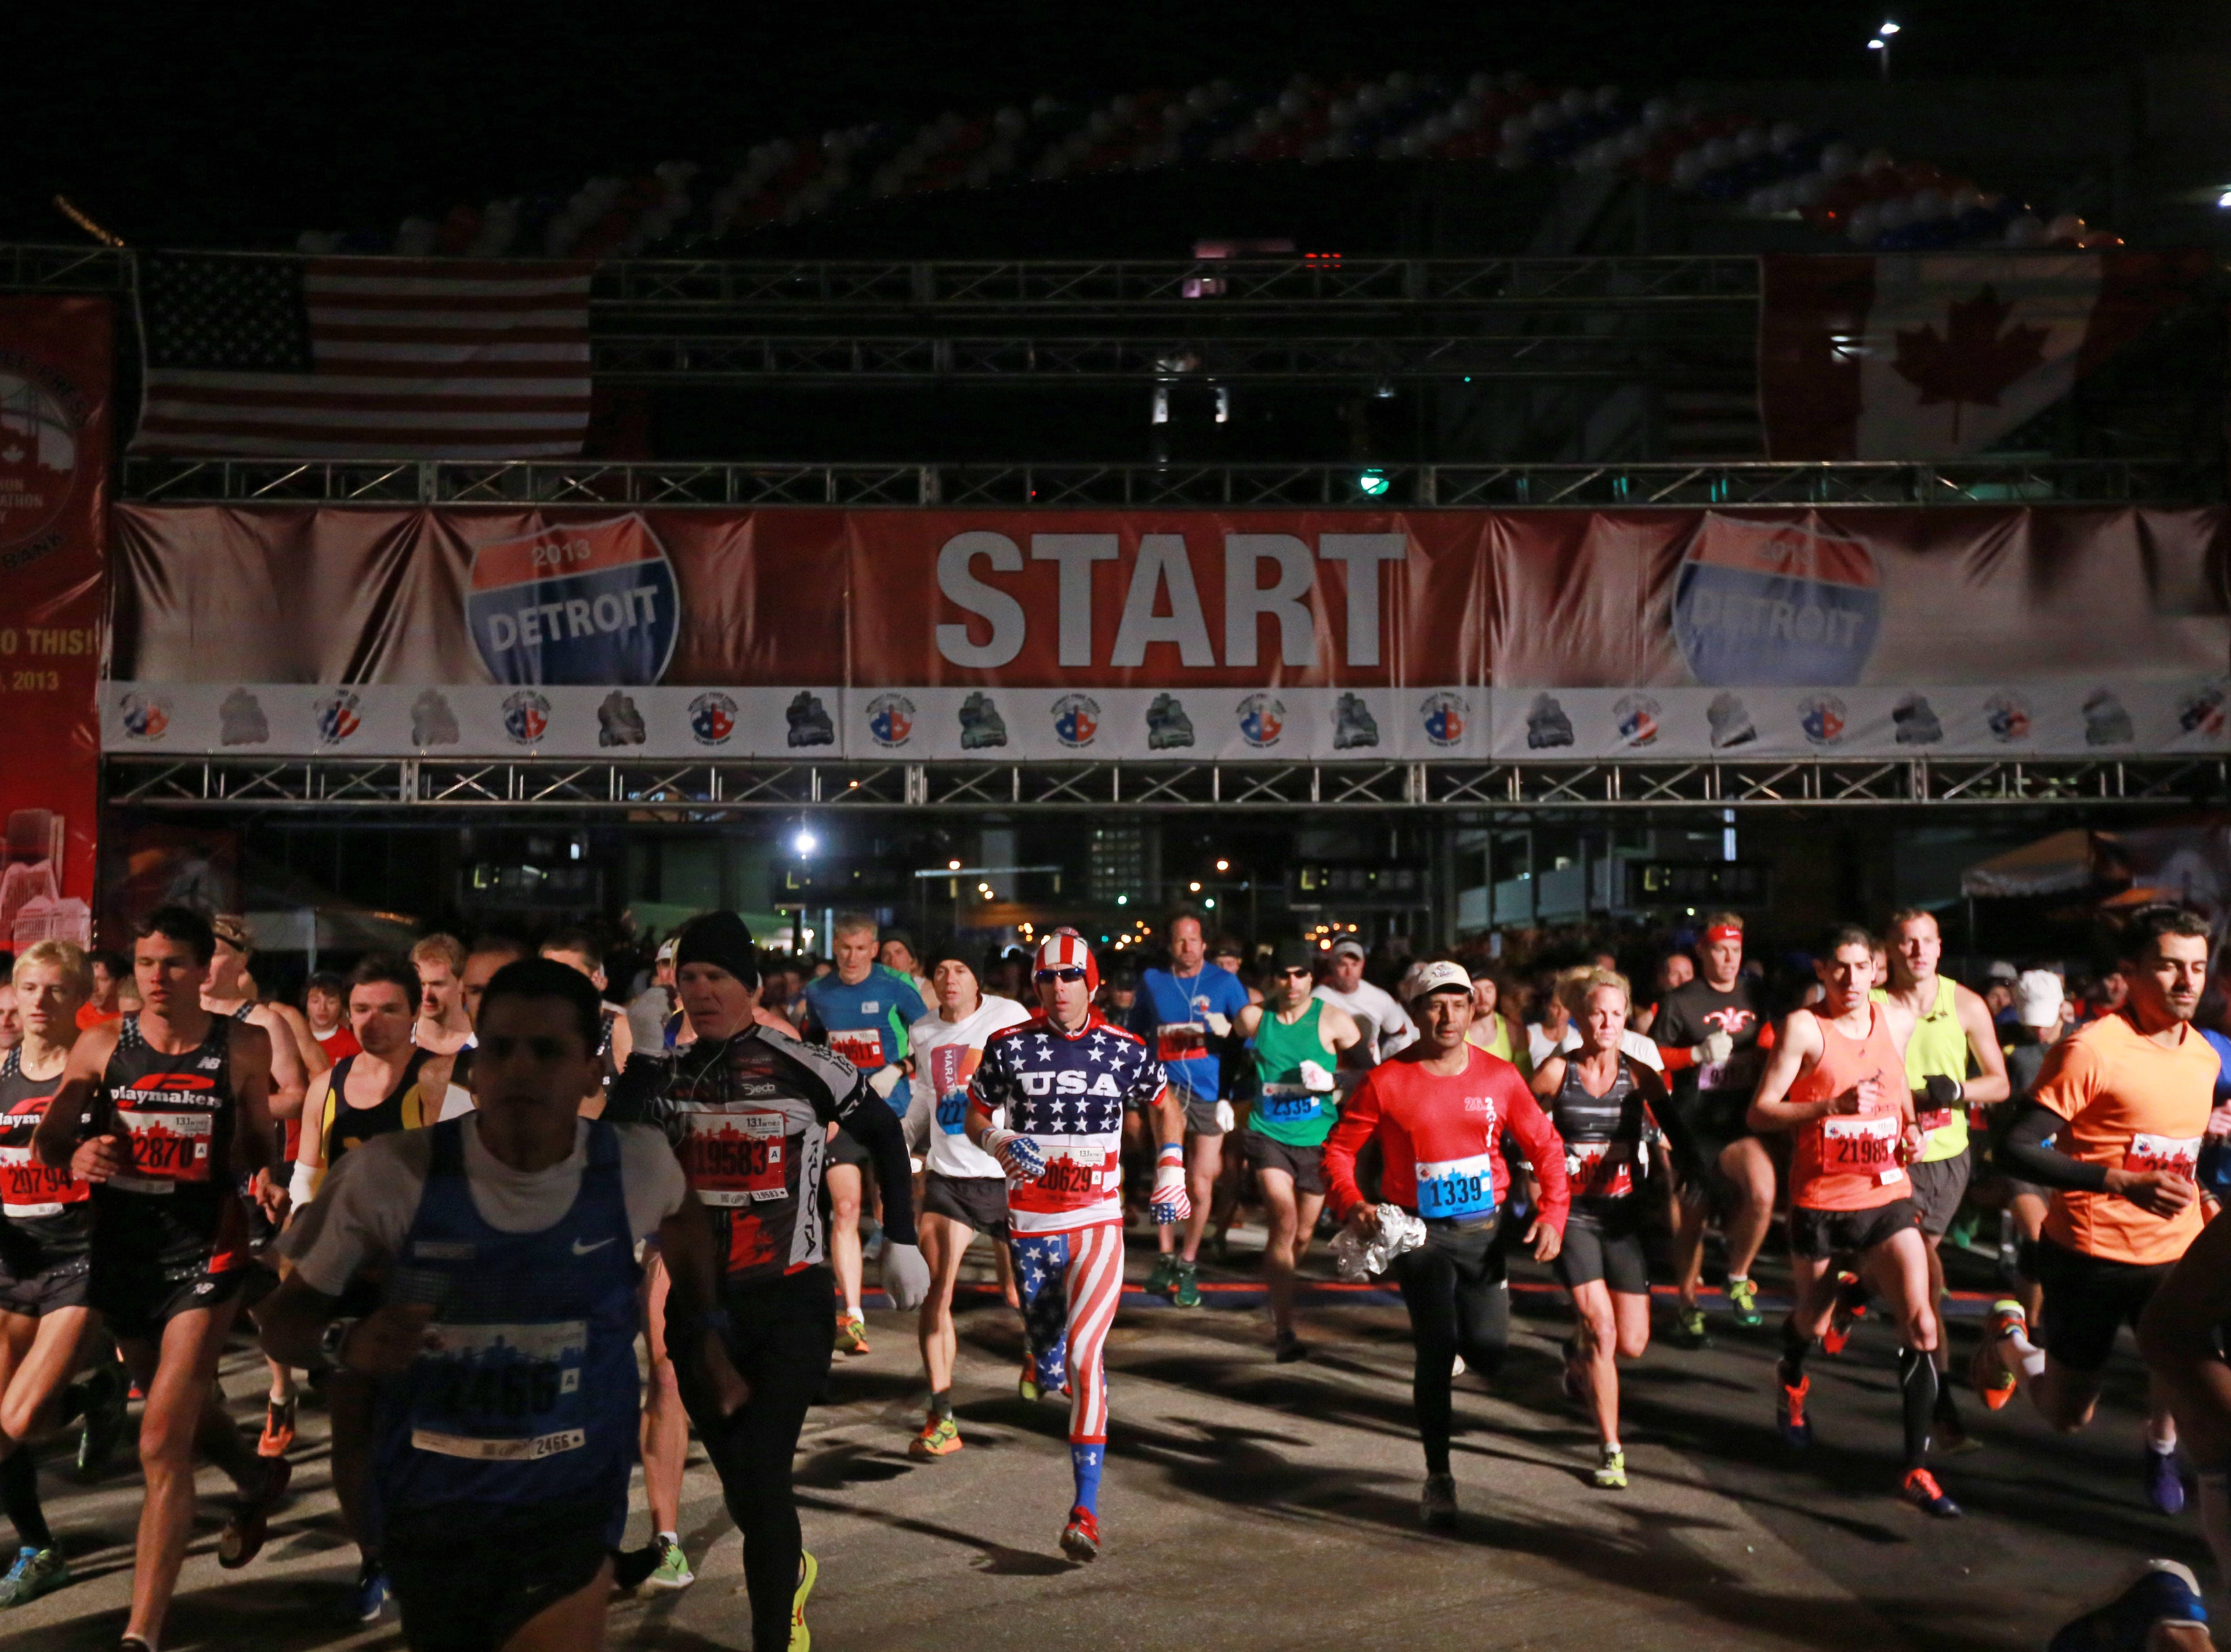 Runners leave the starting line during the 36th Annual Detroit Free Press/Talmer Bank Marathon in Detroit on Sunday, Oct. 20, 2013.